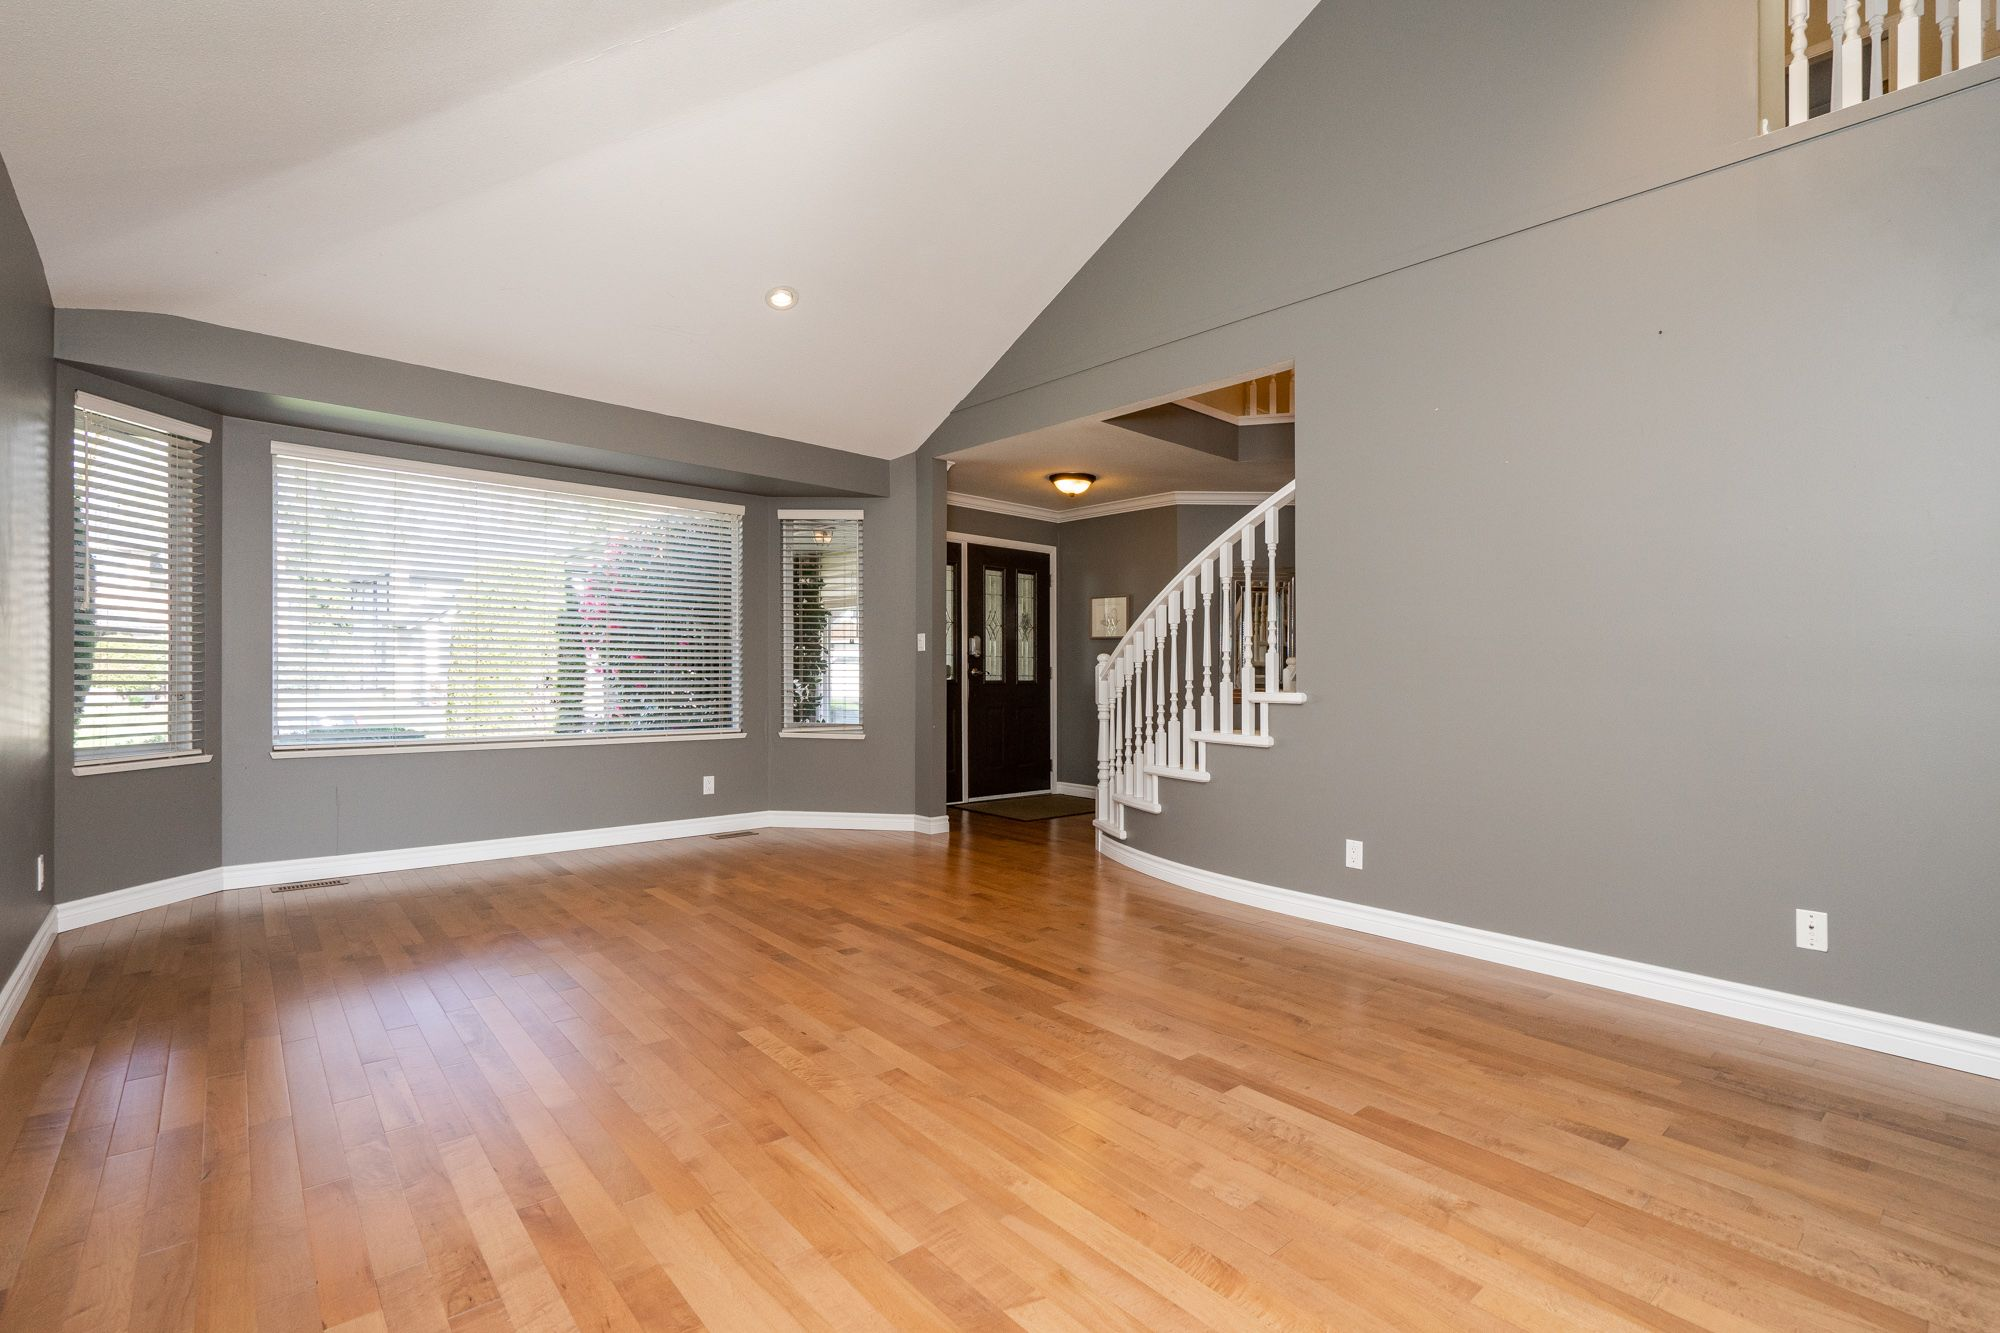 """Photo 14: Photos: 8448 213 Street in Langley: Walnut Grove House for sale in """"Forest Hills"""" : MLS®# R2259409"""